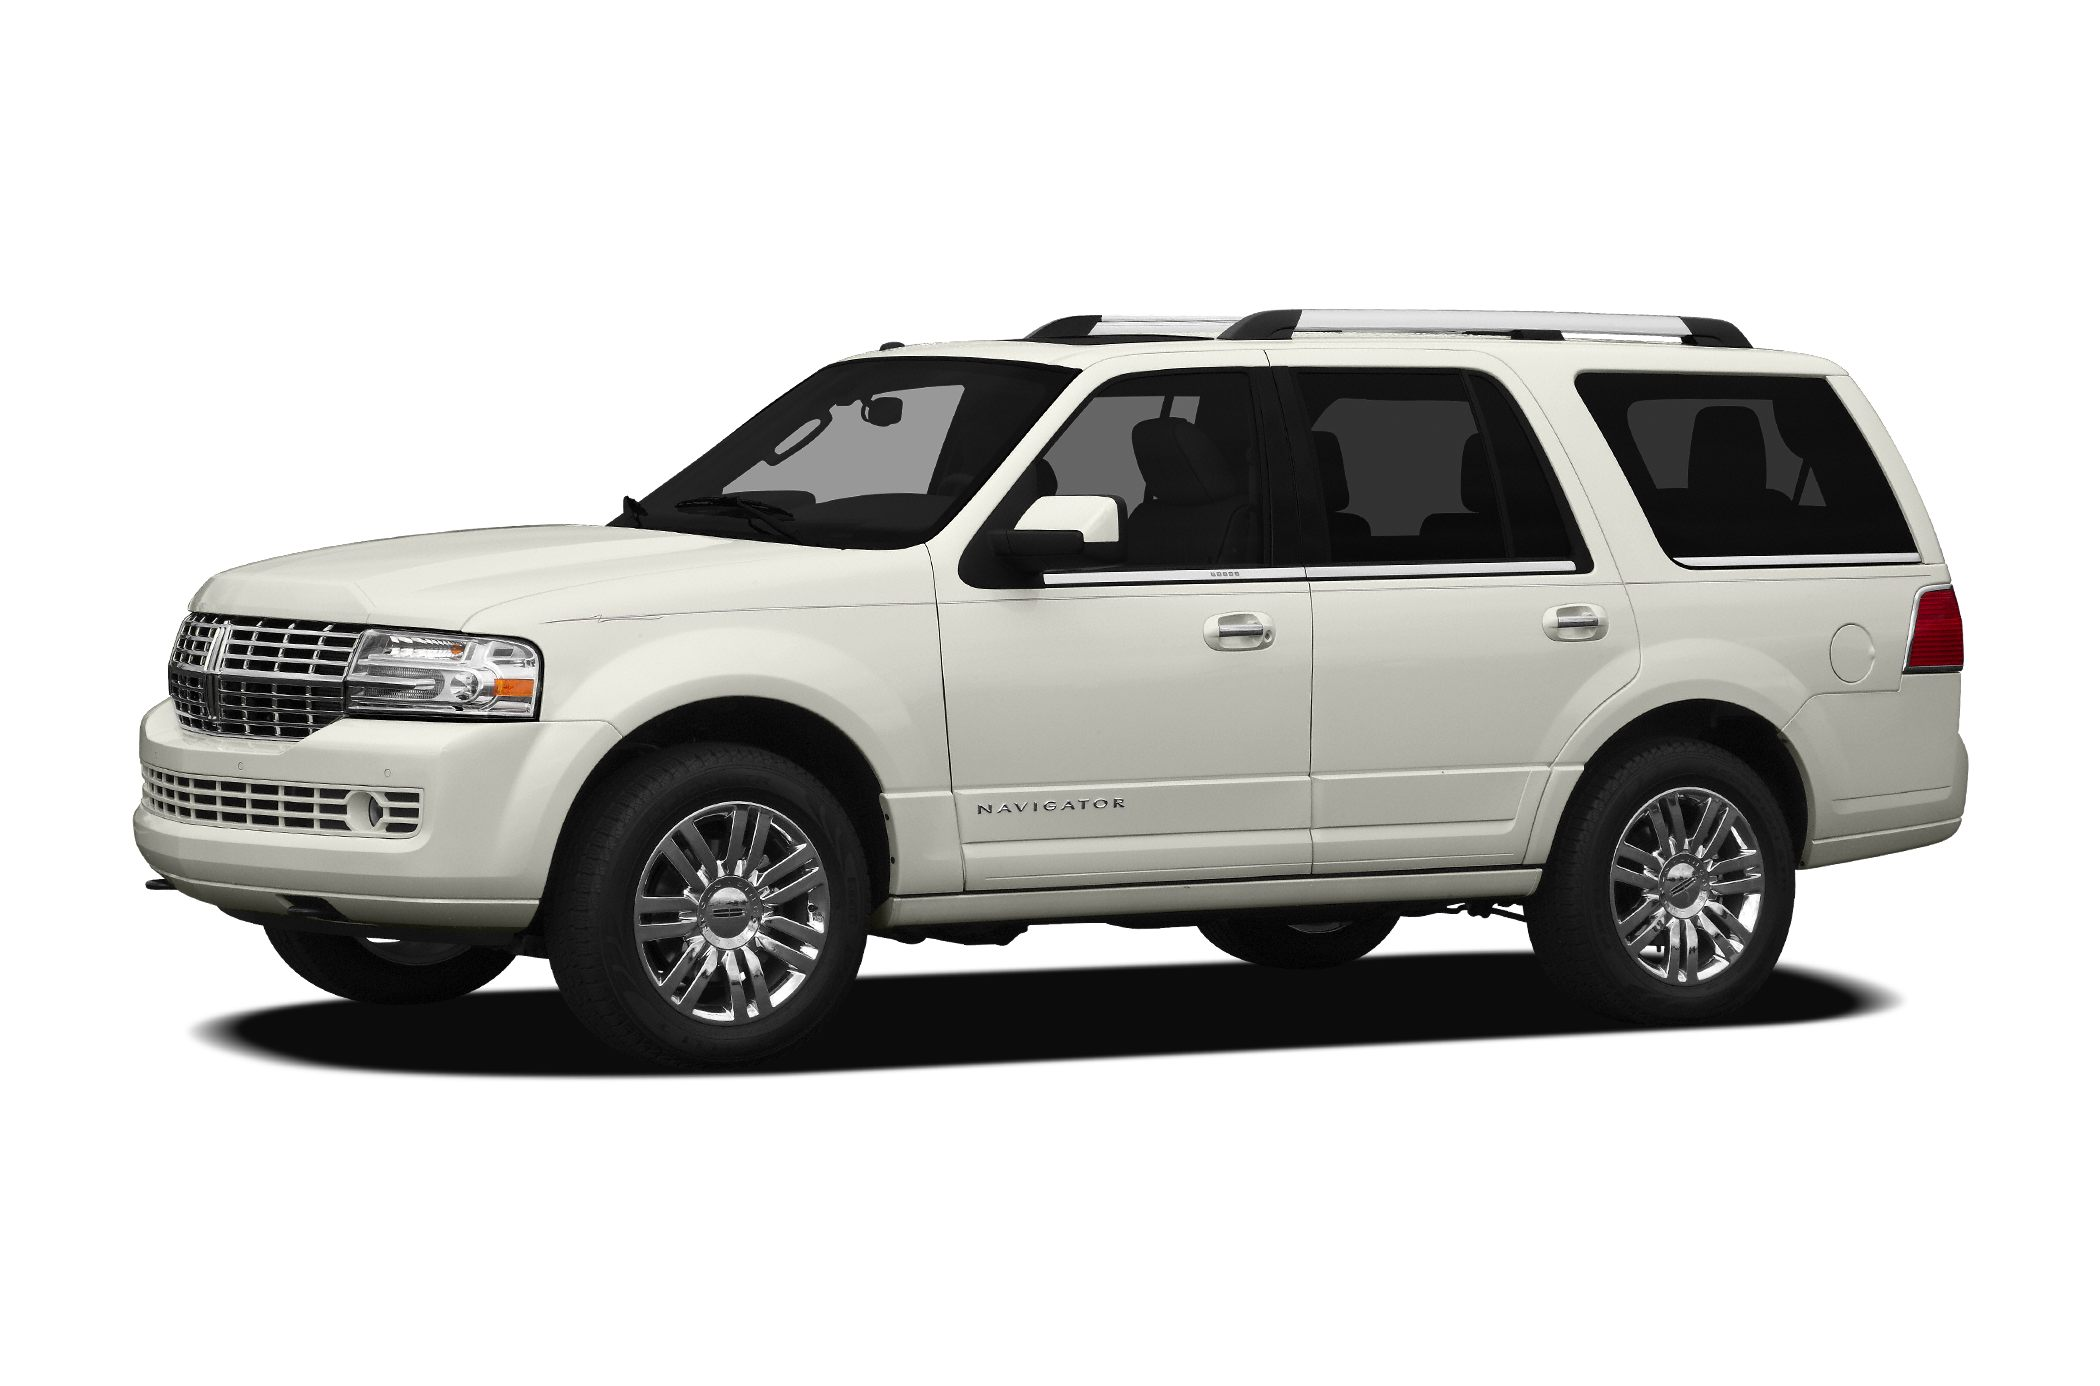 2012 Lincoln Navigator Base SUV for sale in Silver Spring for $35,999 with 51,204 miles.